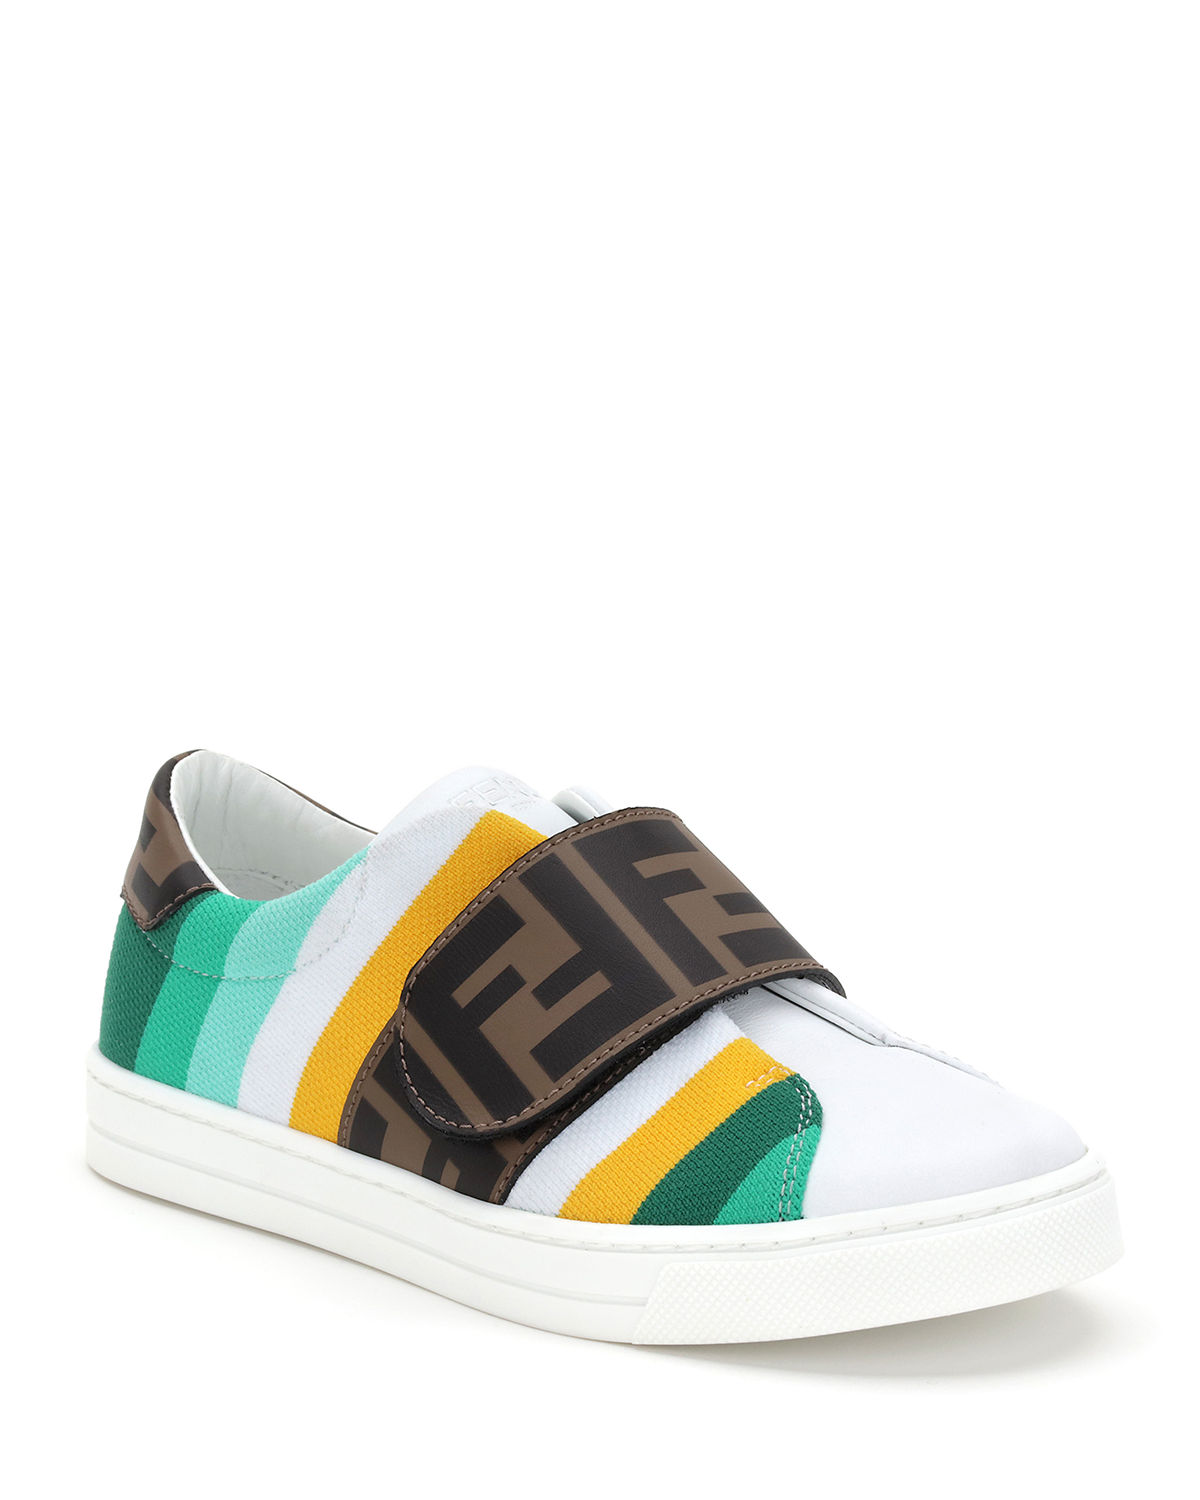 Fendi Leathers KID'S STRIPED FF GRIP-STRAP SNEAKERS, TODDLER/KIDS